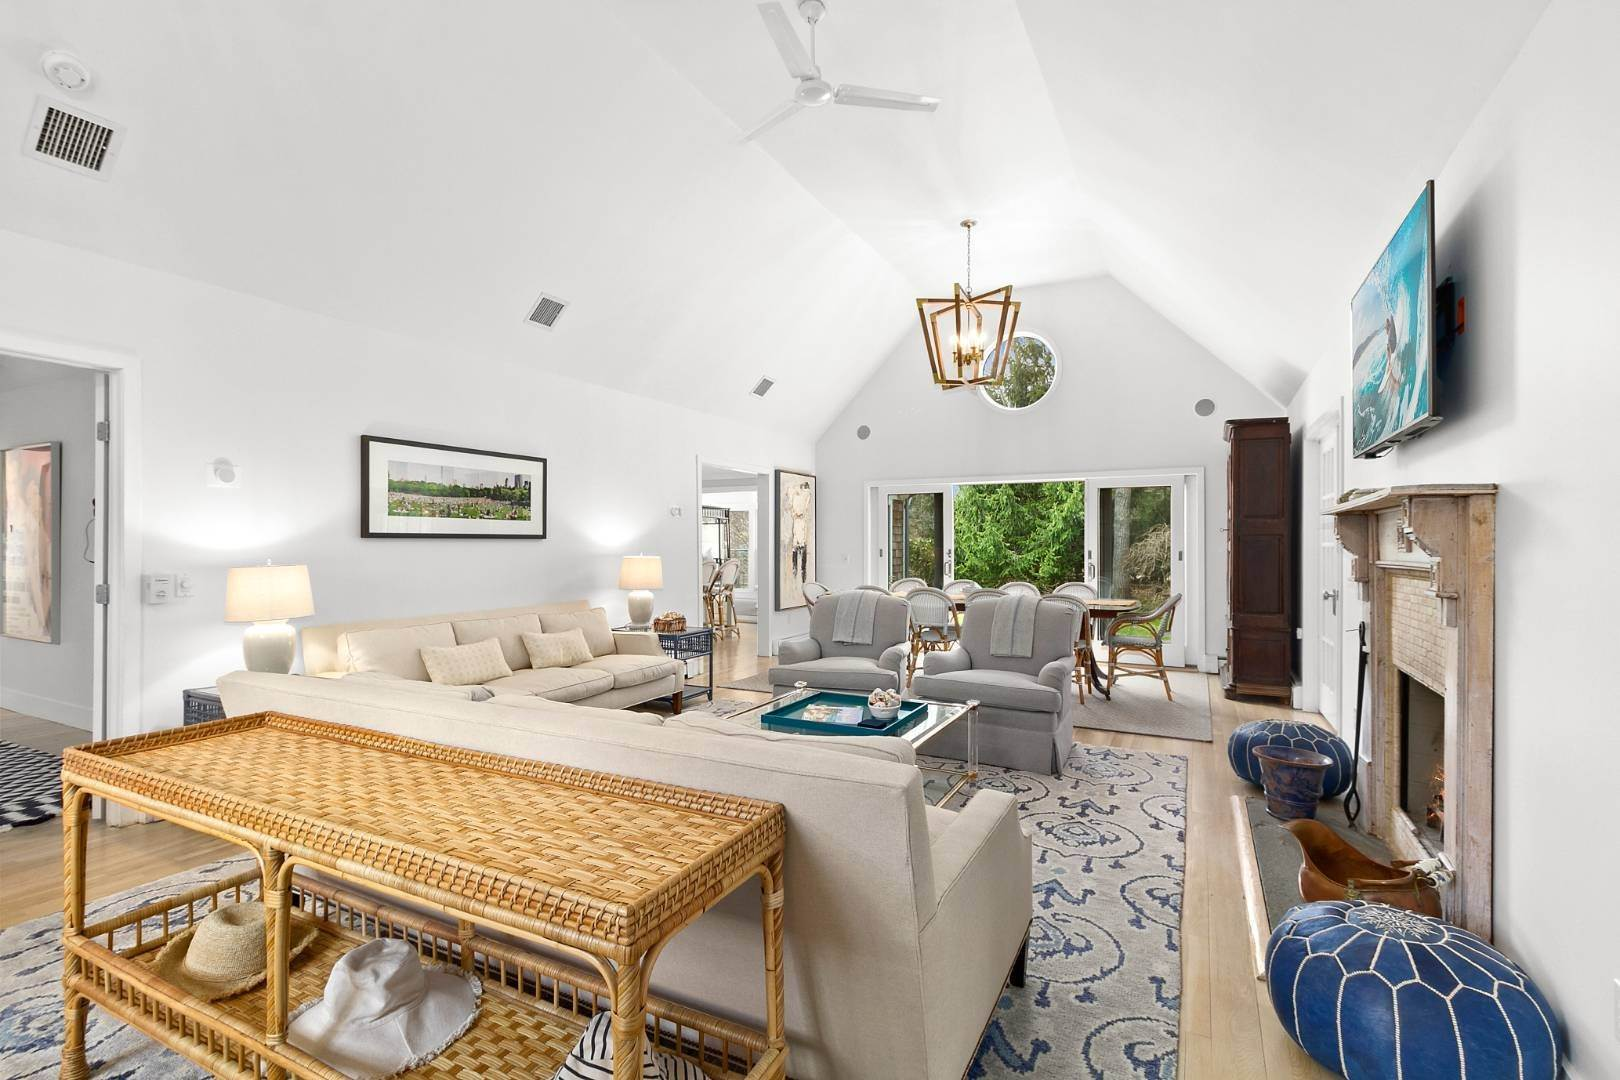 13. Single Family Home for Sale at Historic Springs Two-House Compound 104 Old Stone Hwy, East Hampton, NY 11937